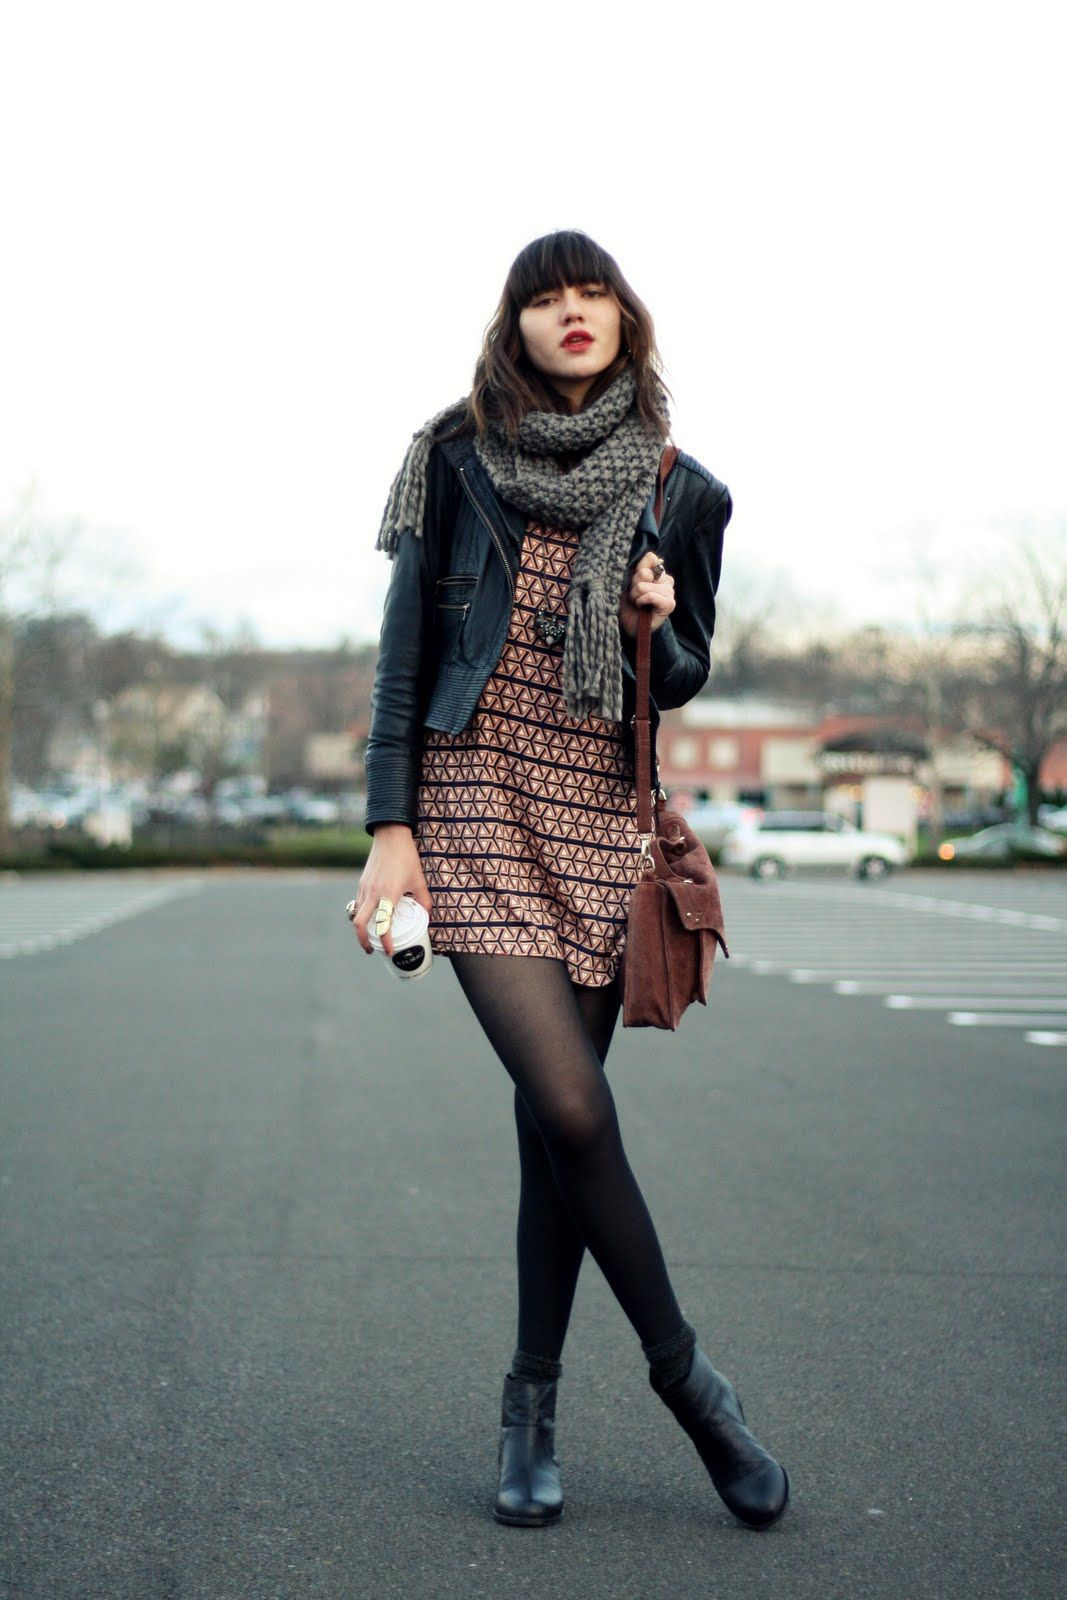 Natalie Suarez rocks our Rina Black boots from our Holiday 2011 line.